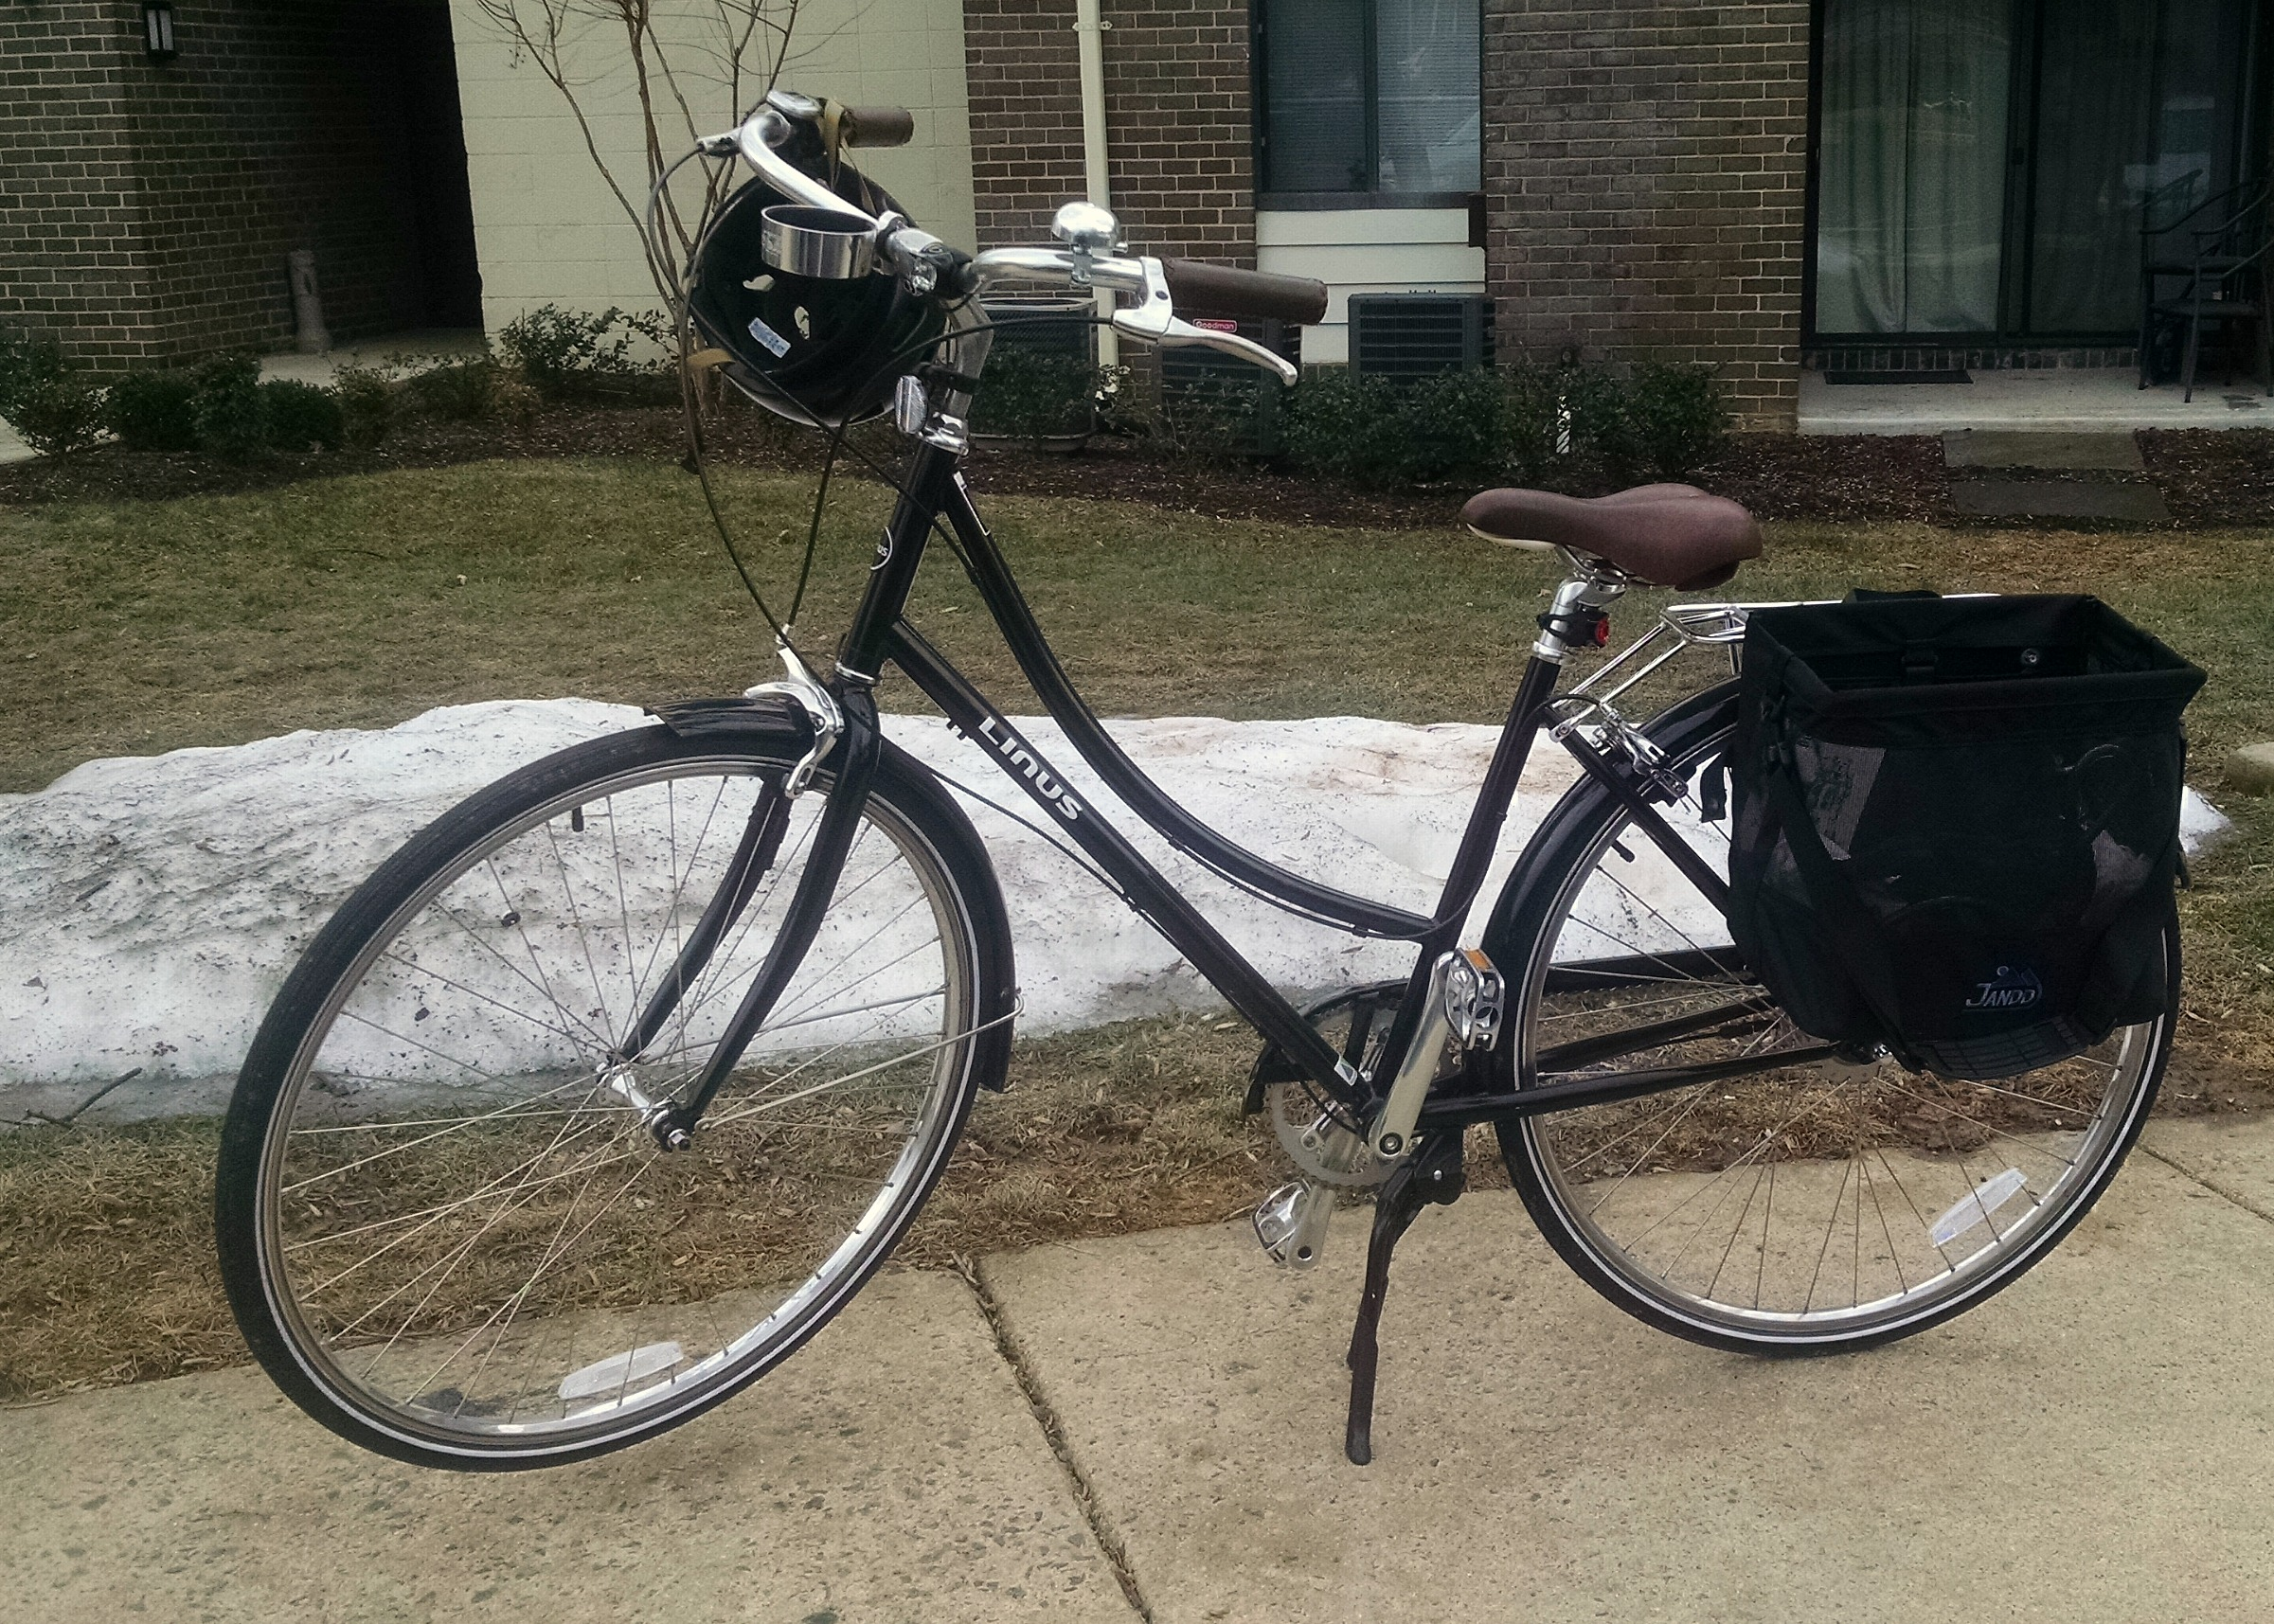 This is my city bike.  Its a Linus Dutchi 8 and her name is Peggy.  I can't believe I got to ride her outside in February!